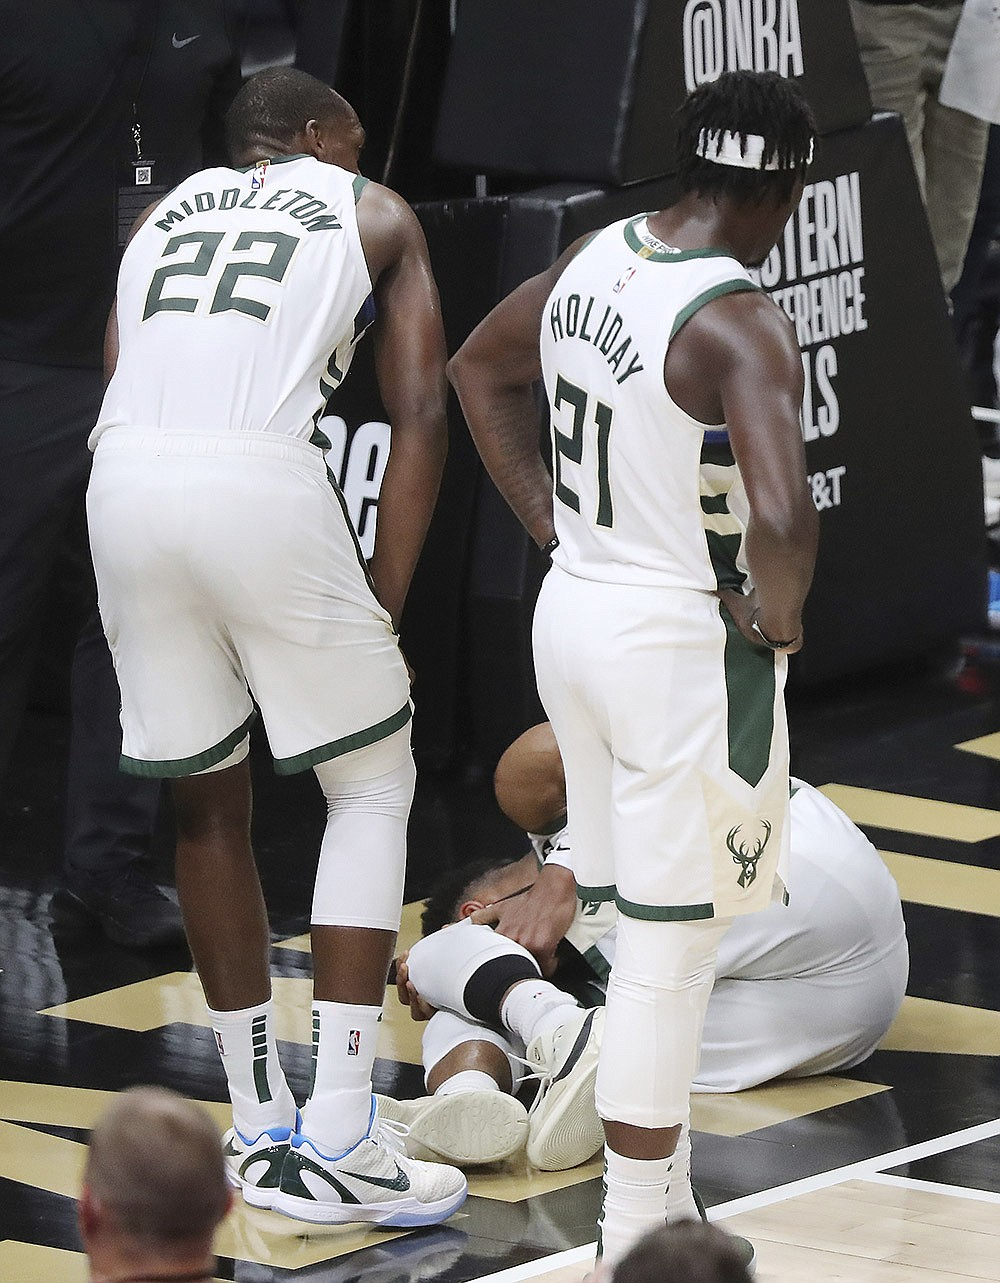 Milwaukee Bucks teammates Khris Middleton (left) and Jrue Holiday look at Giannis Antetokounmpo after he was injured during the second half in Game 4 of the NBA Eastern Conference finals on Tuesday. Antetokounmpo is doubtful tonight for Game 5 with a hyperextension of his left knee. (AP/Curtis Compton/Atlanta Journal-Constitution)